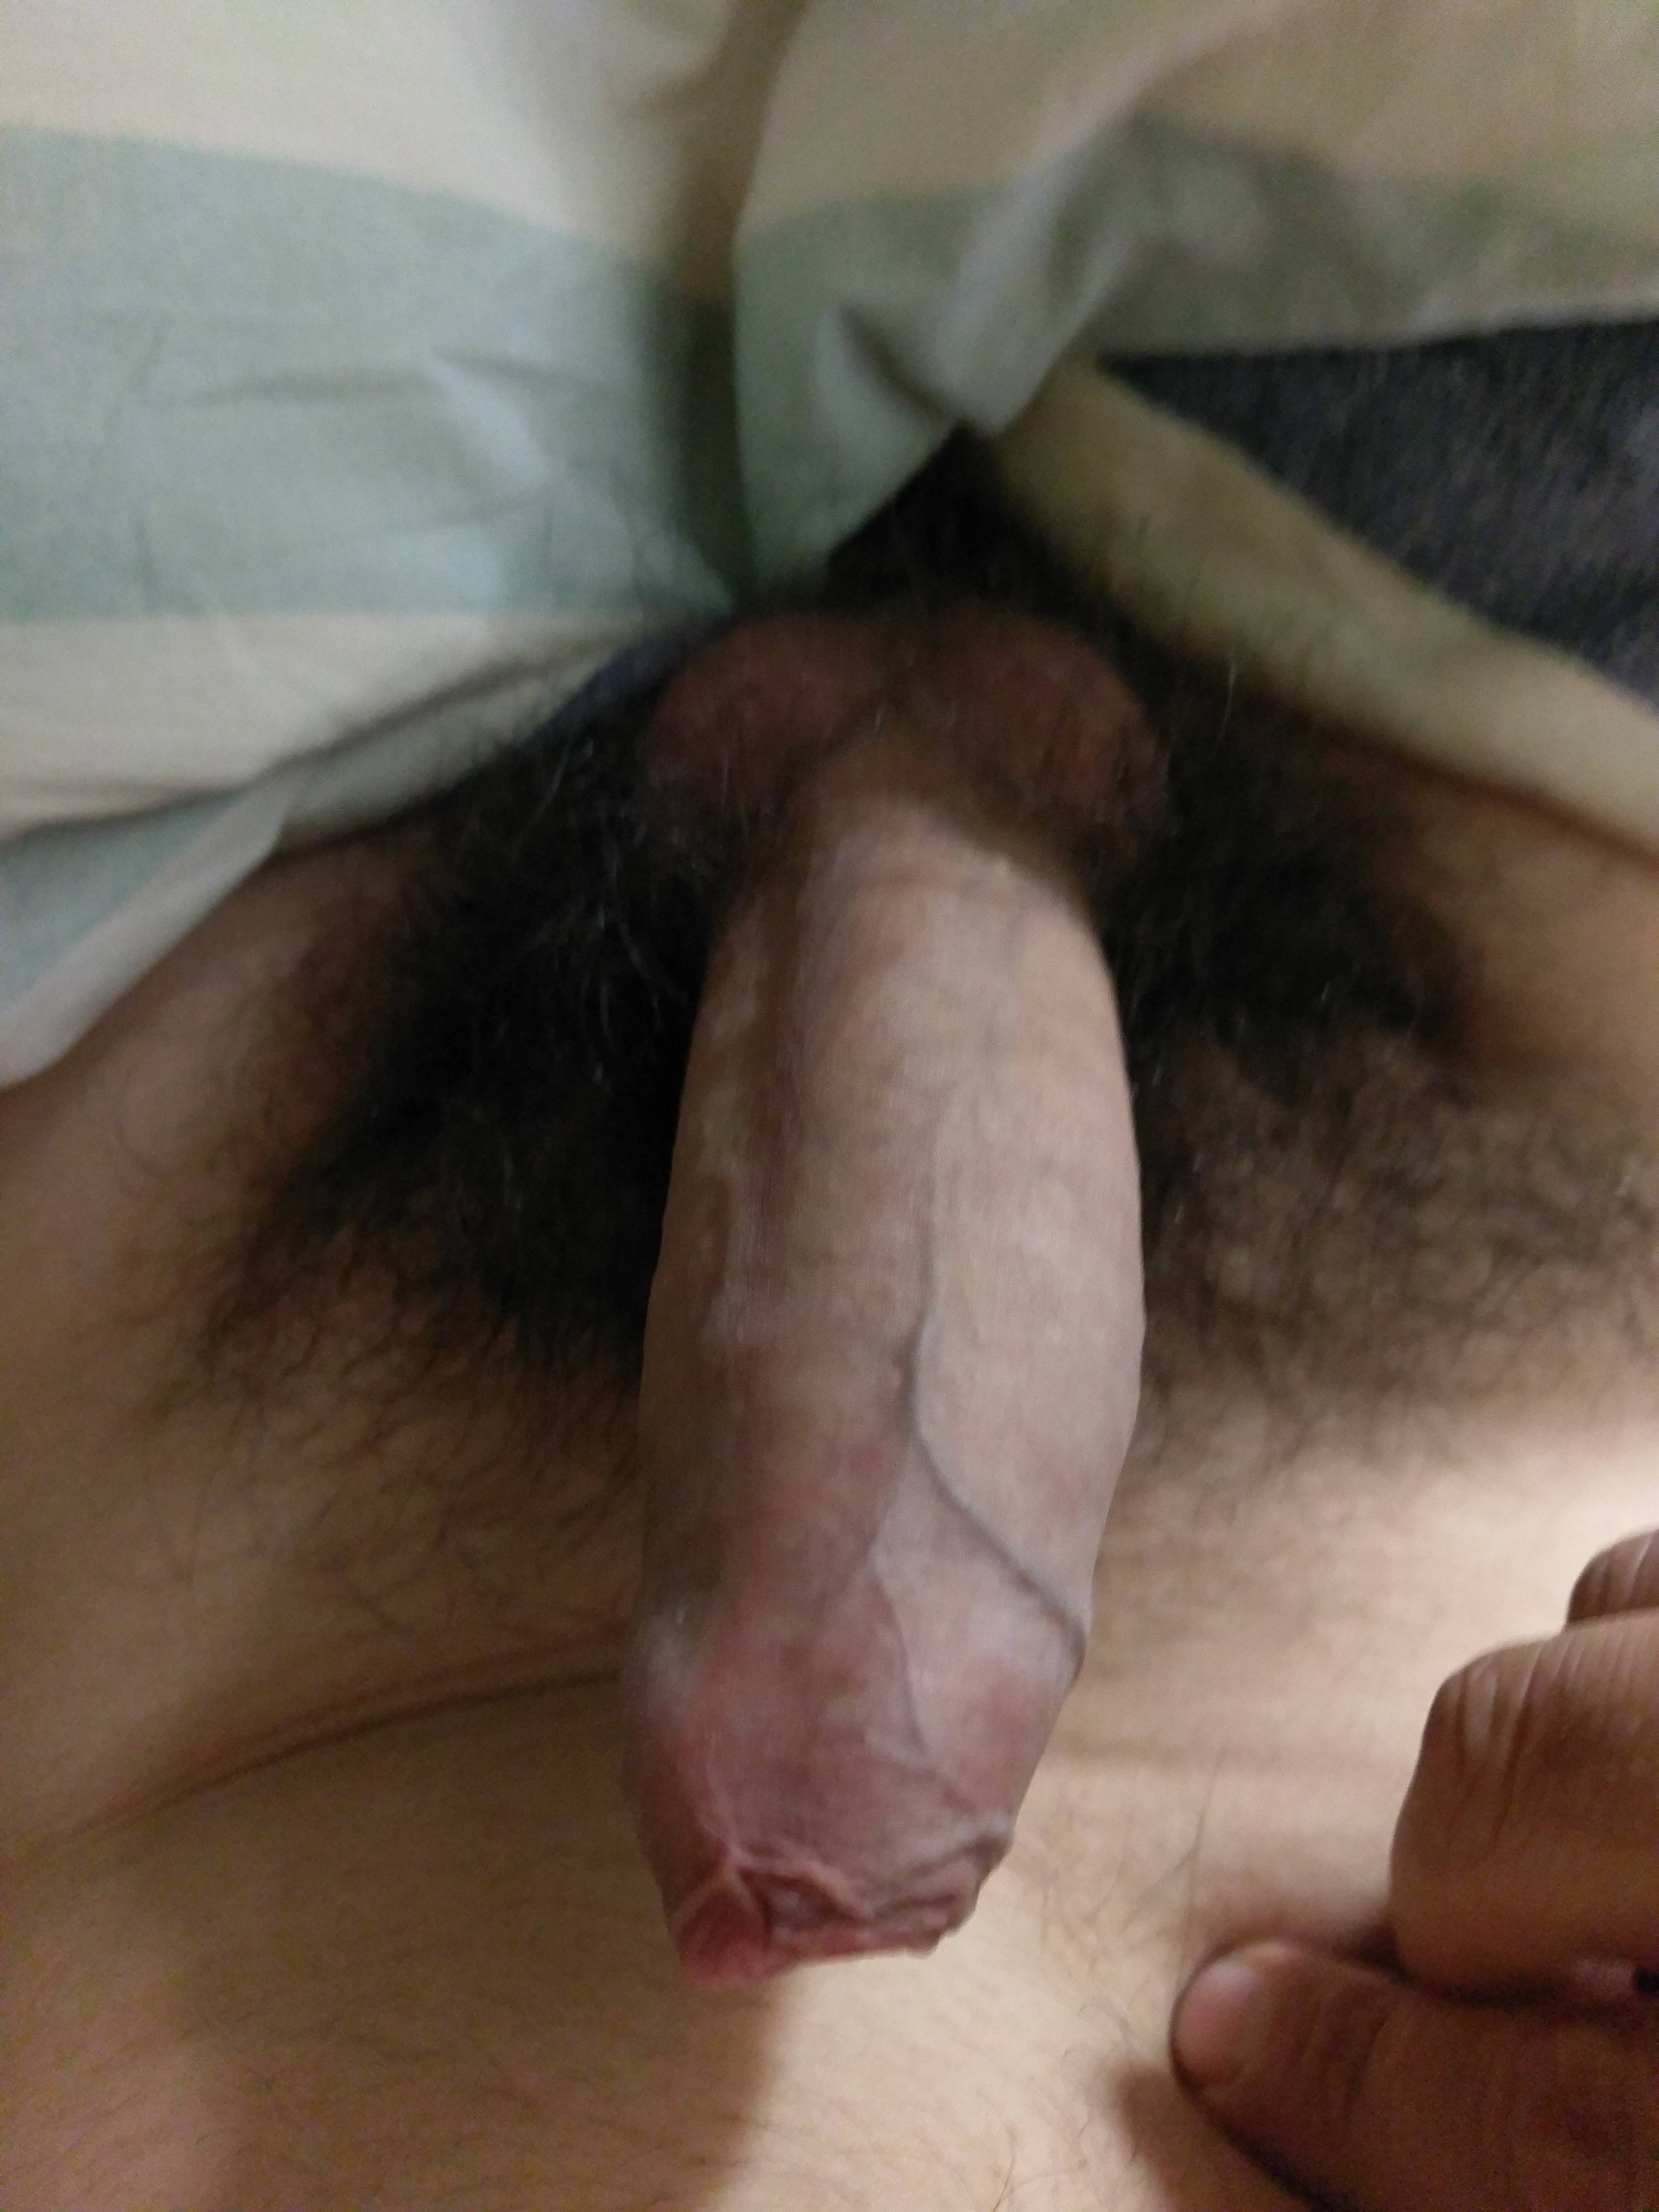 Very sexy cock